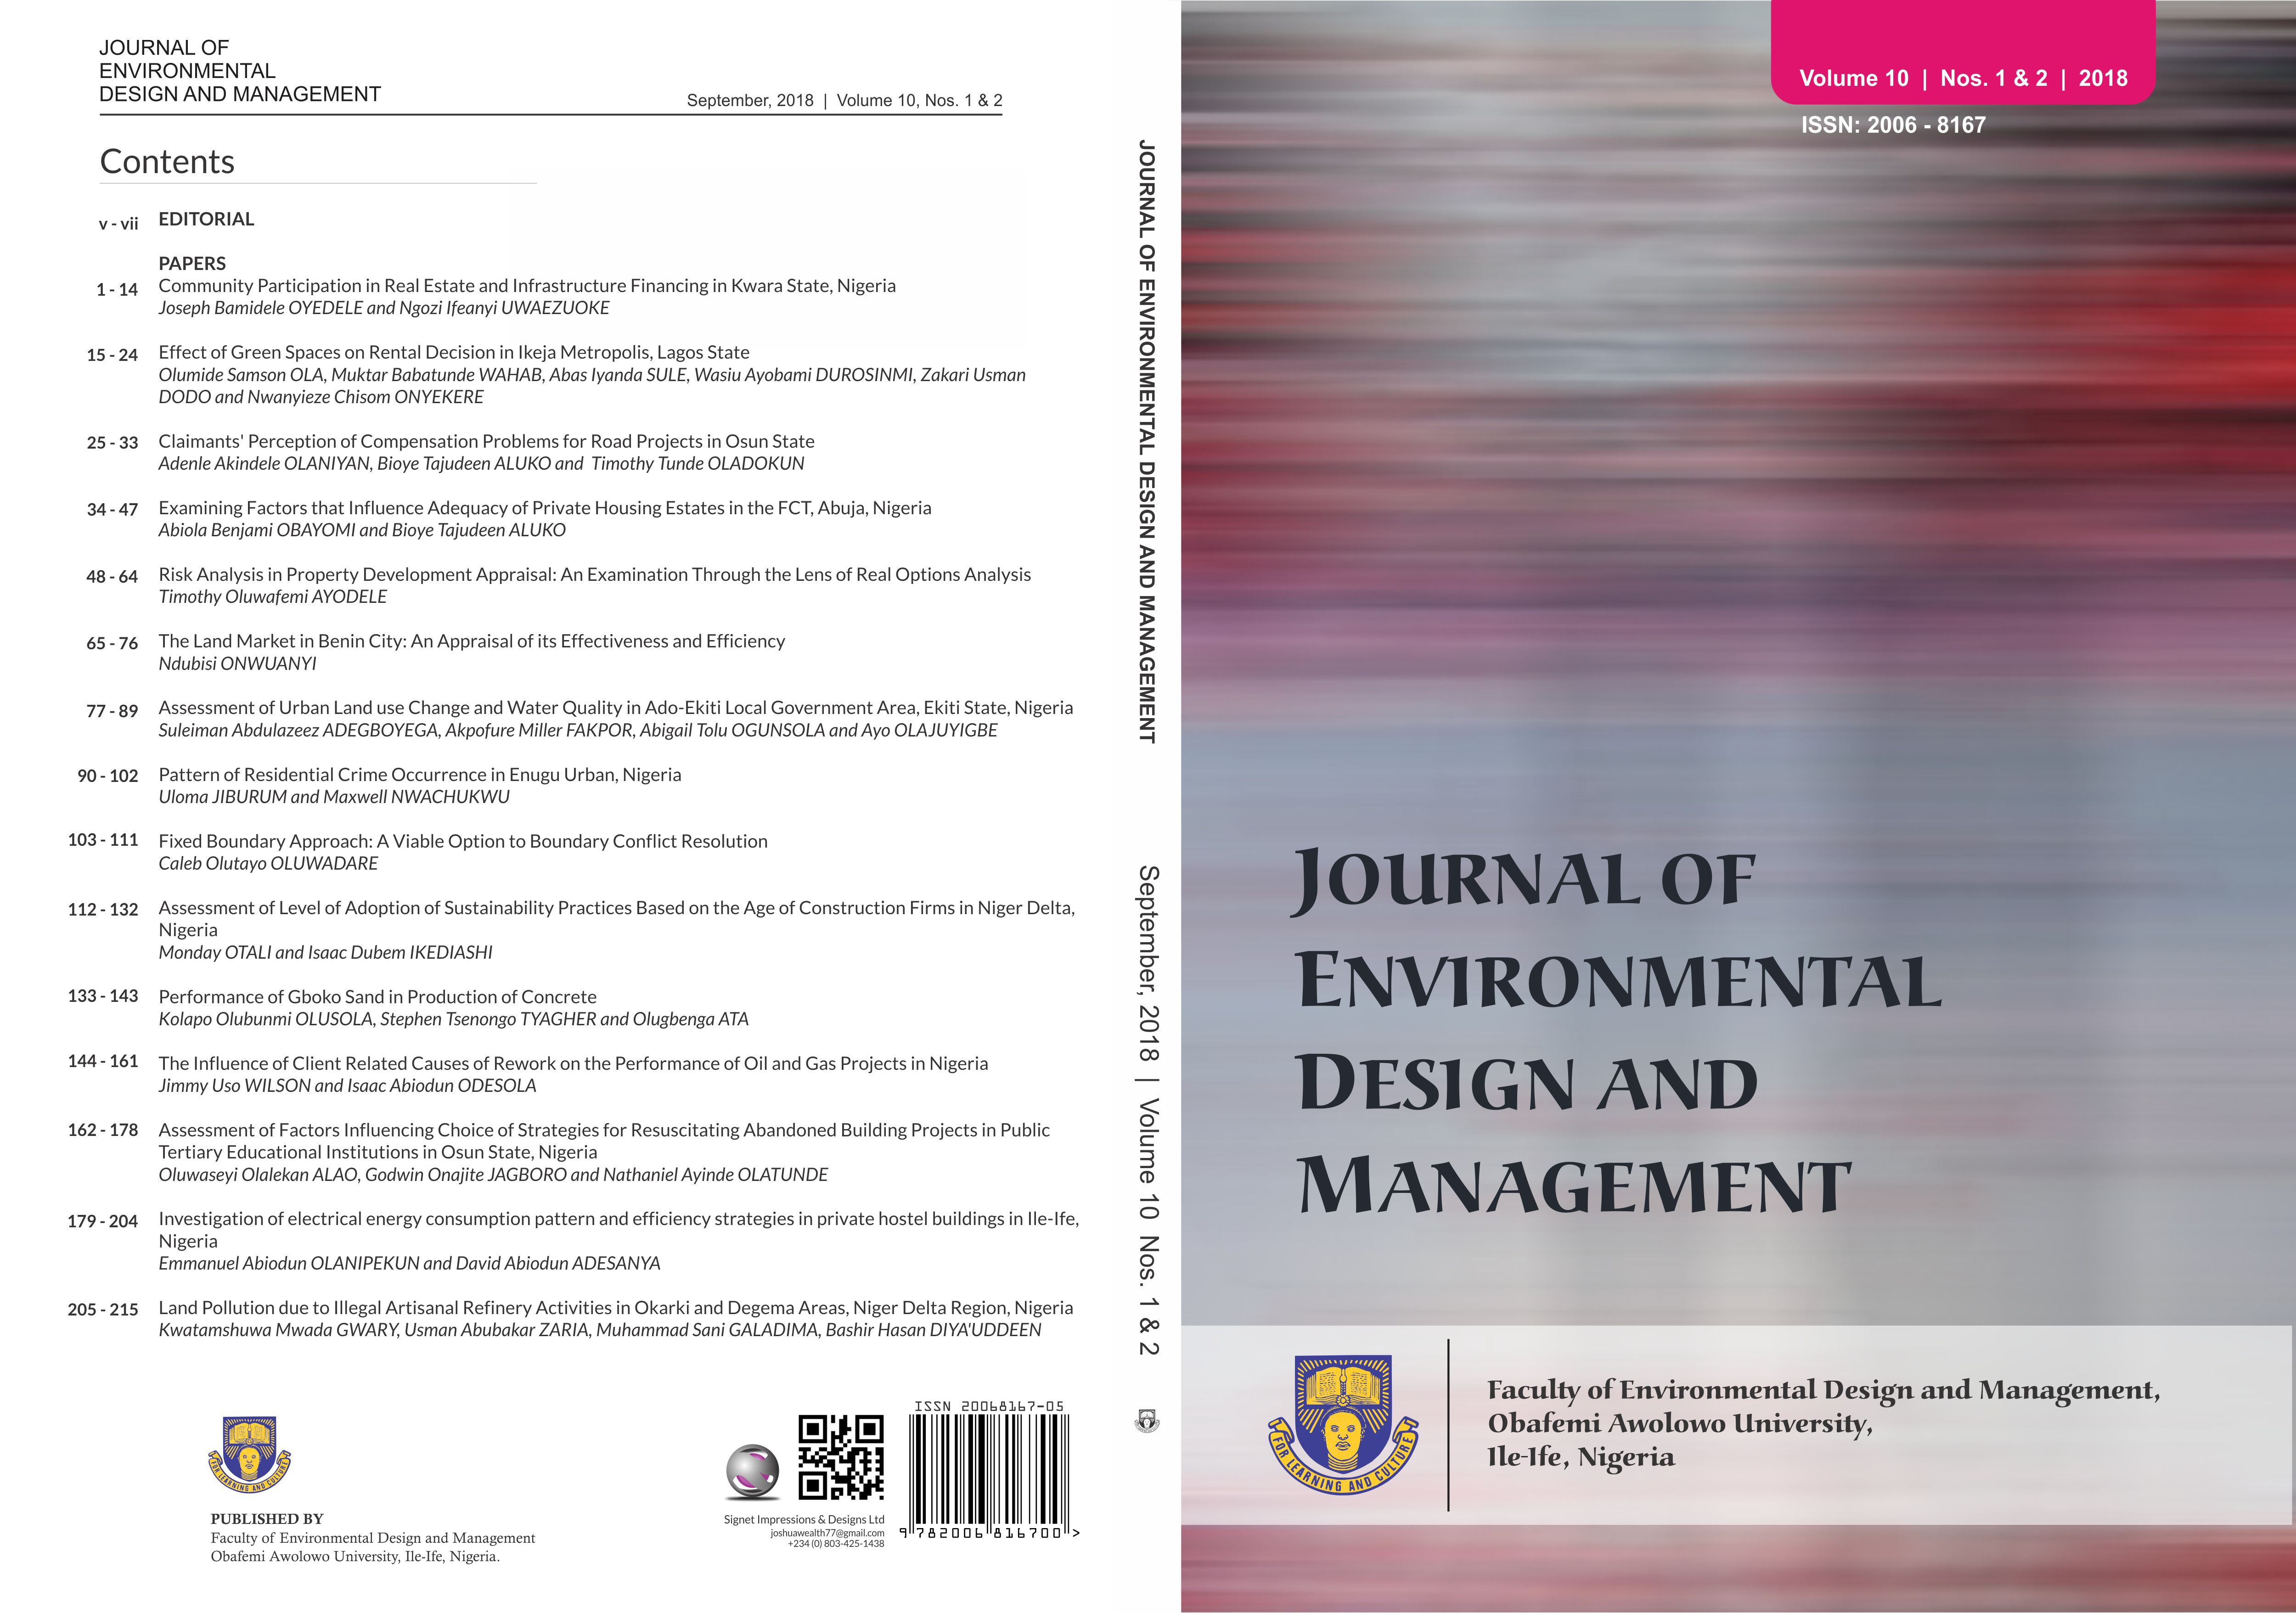 Journal of Environmental Design and Management